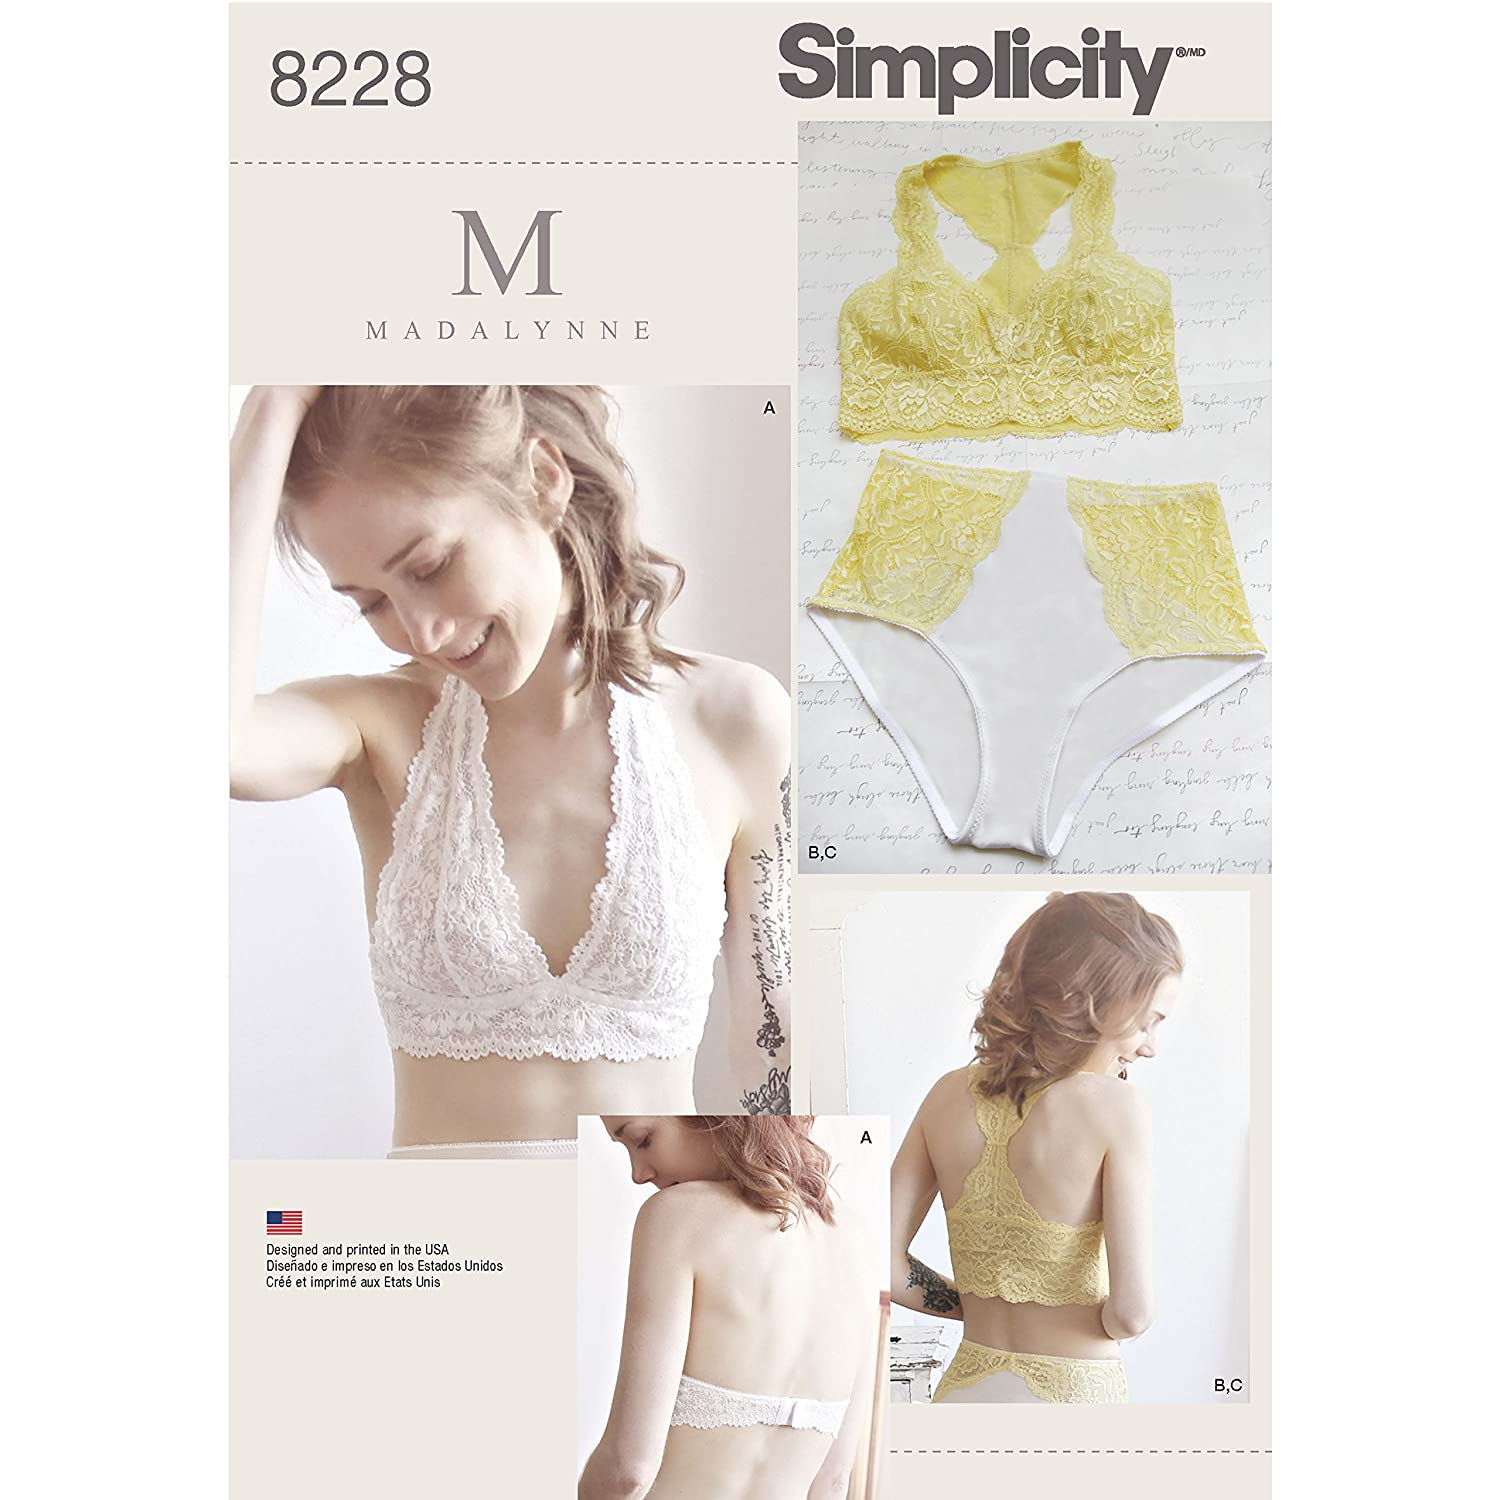 f53a22bc7 Amazon.com  Simplicity Pattern 8228 Misses  Soft Cup Bras and Panties by  Madalynne